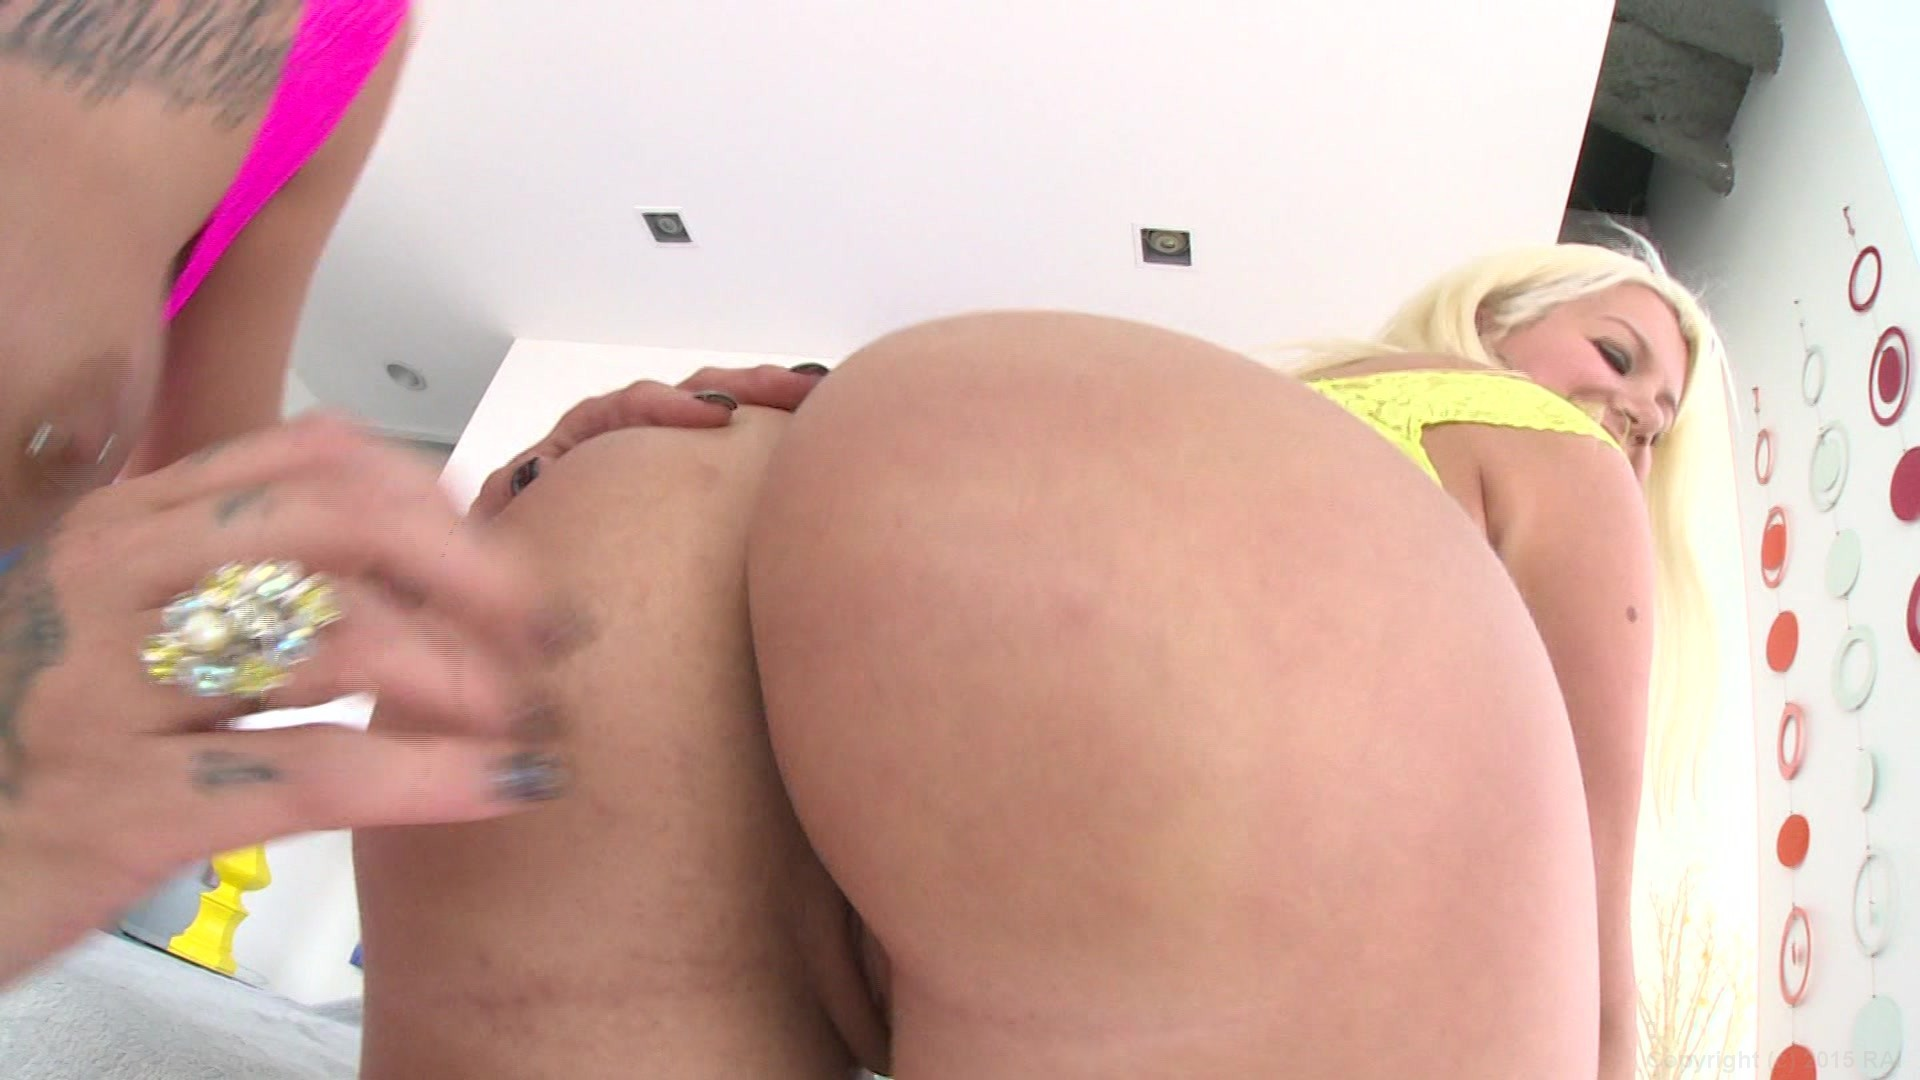 Free Video Preview image 1 from Bangin' Assholes